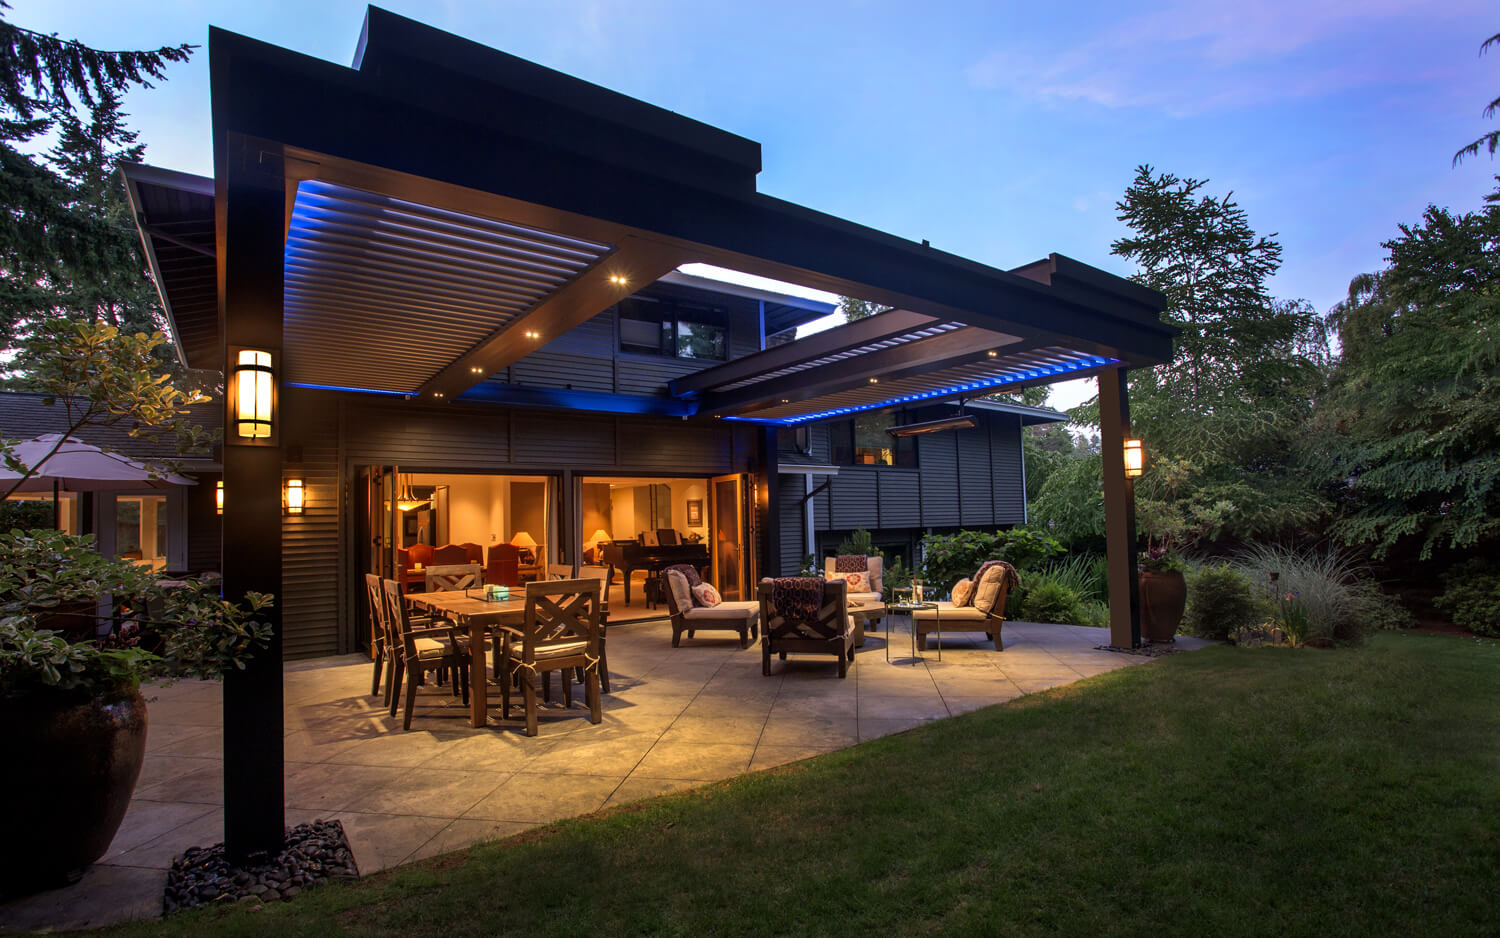 majestic woodbridge home designs. Awnings  Outdoor Structures Retractable Majestic Awning New Jersey